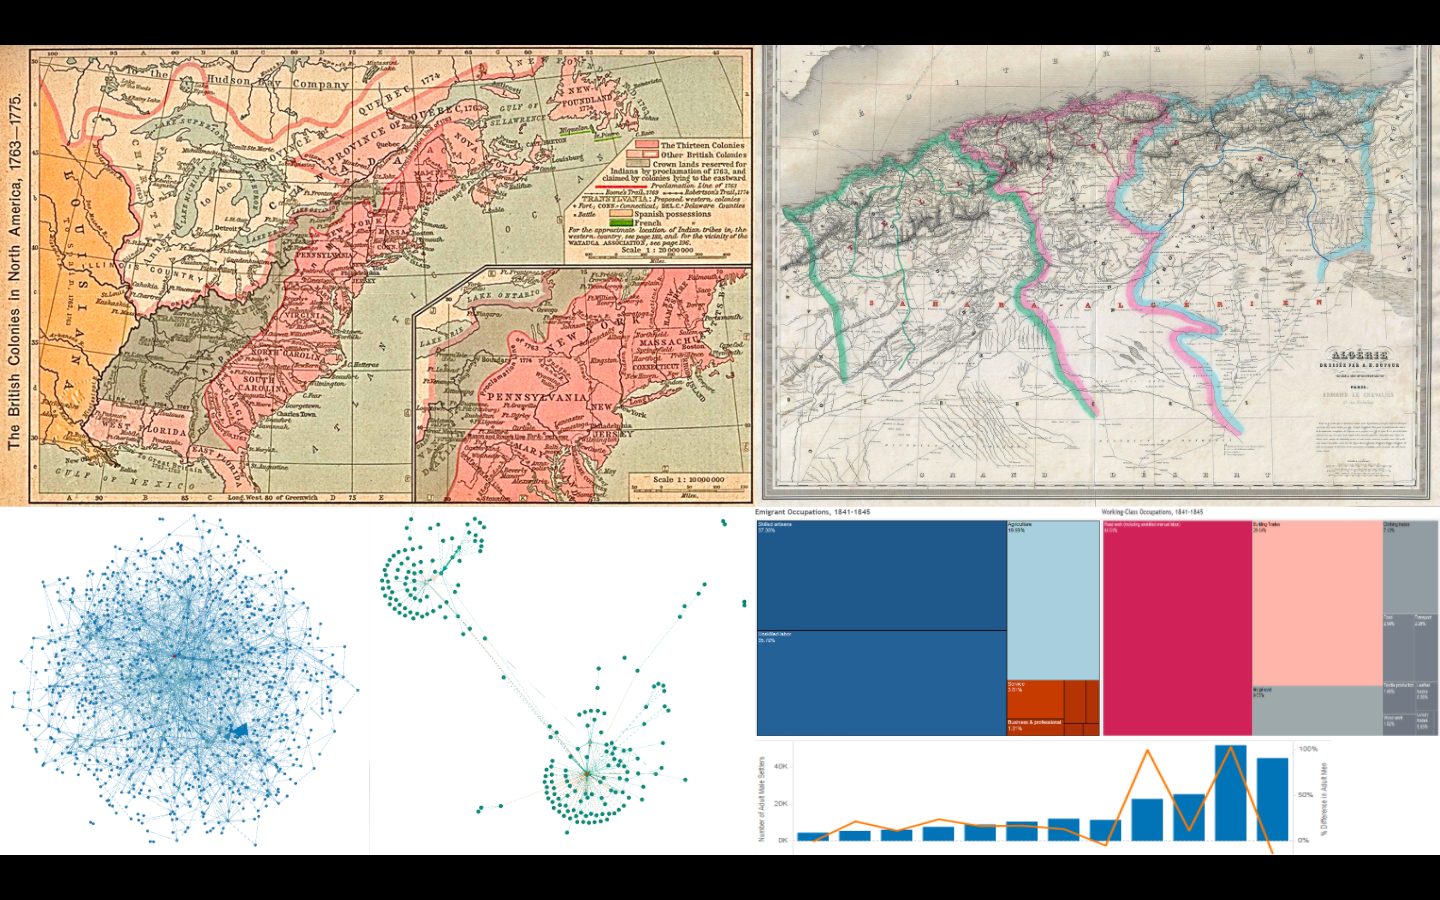 Historic maps of the United States and Algeria with network and data visualizations